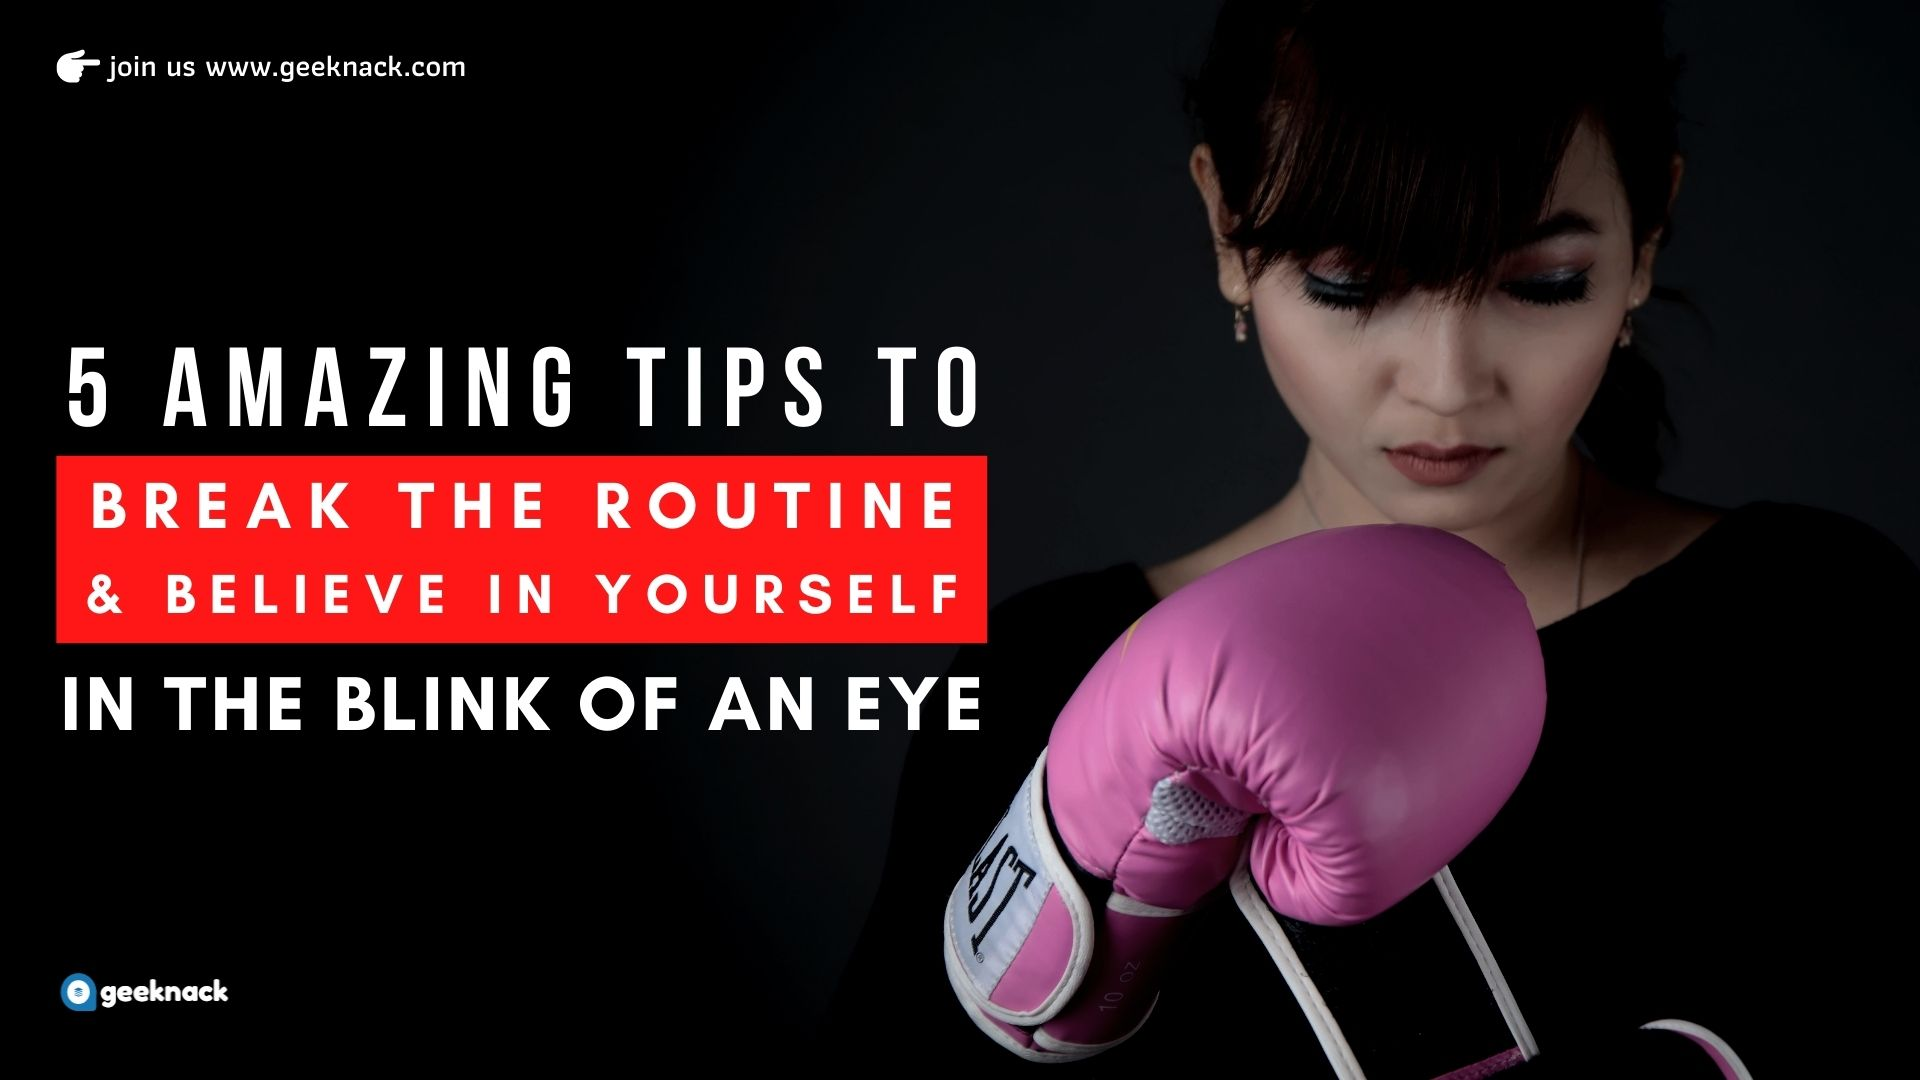 5 Amazing Tips to Break the Routine & Believe in Yourself In The Blink of an Eye